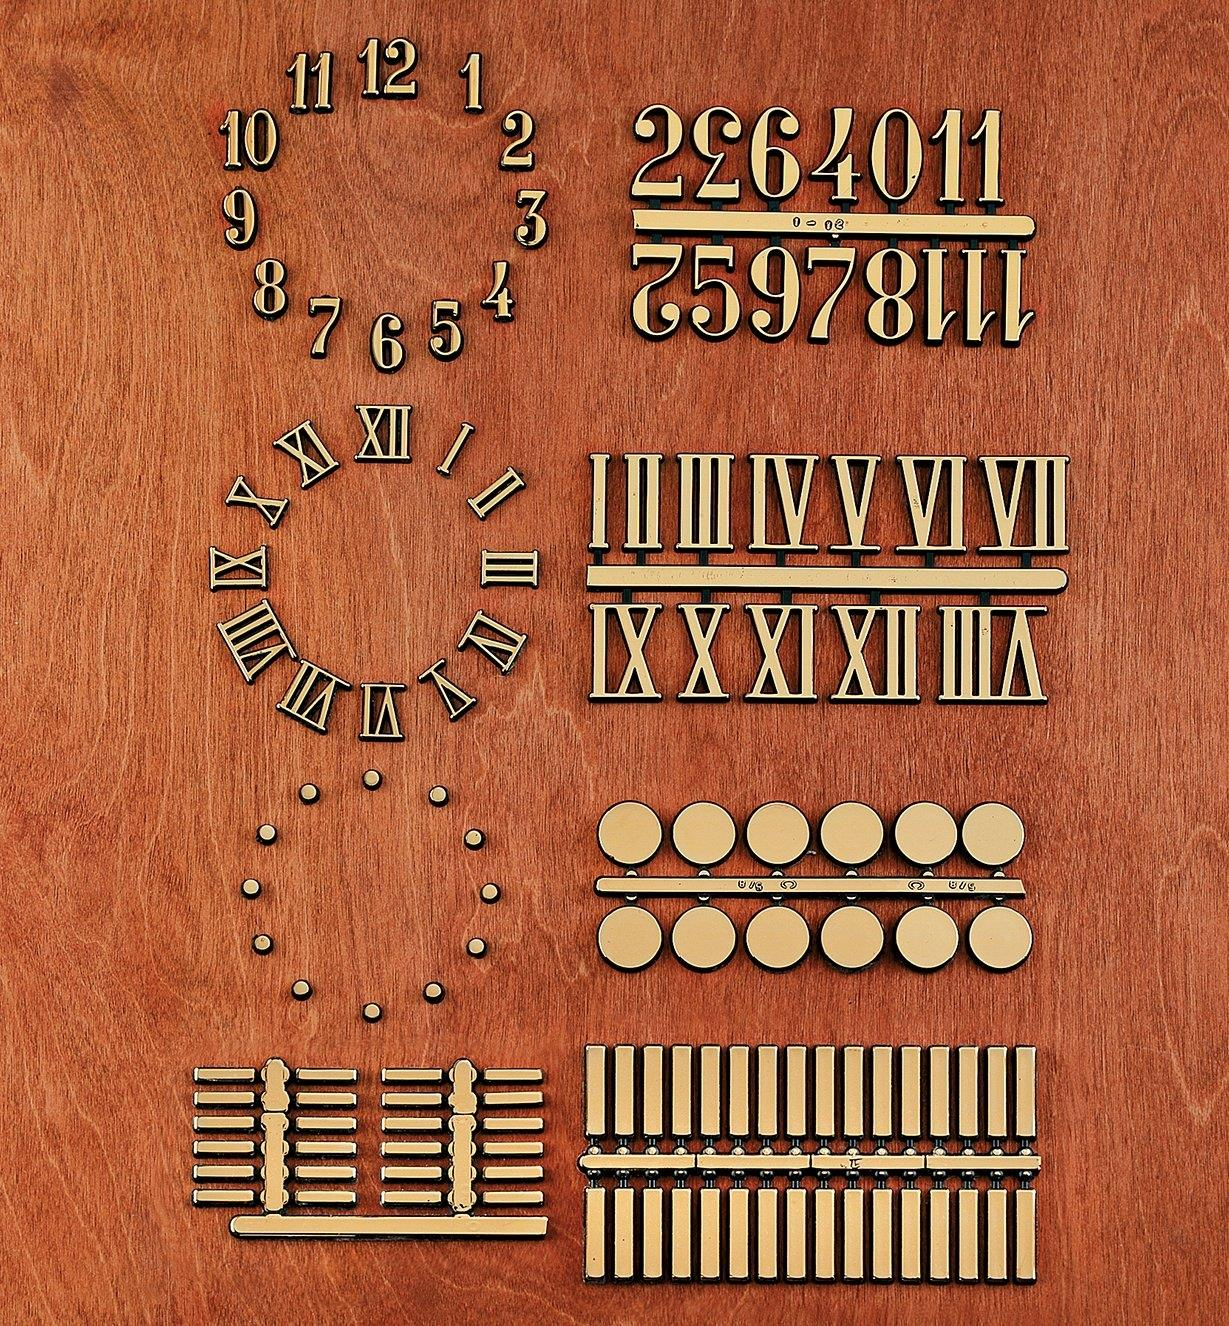 Adhesive-Backed Numerals, Dots & Bars